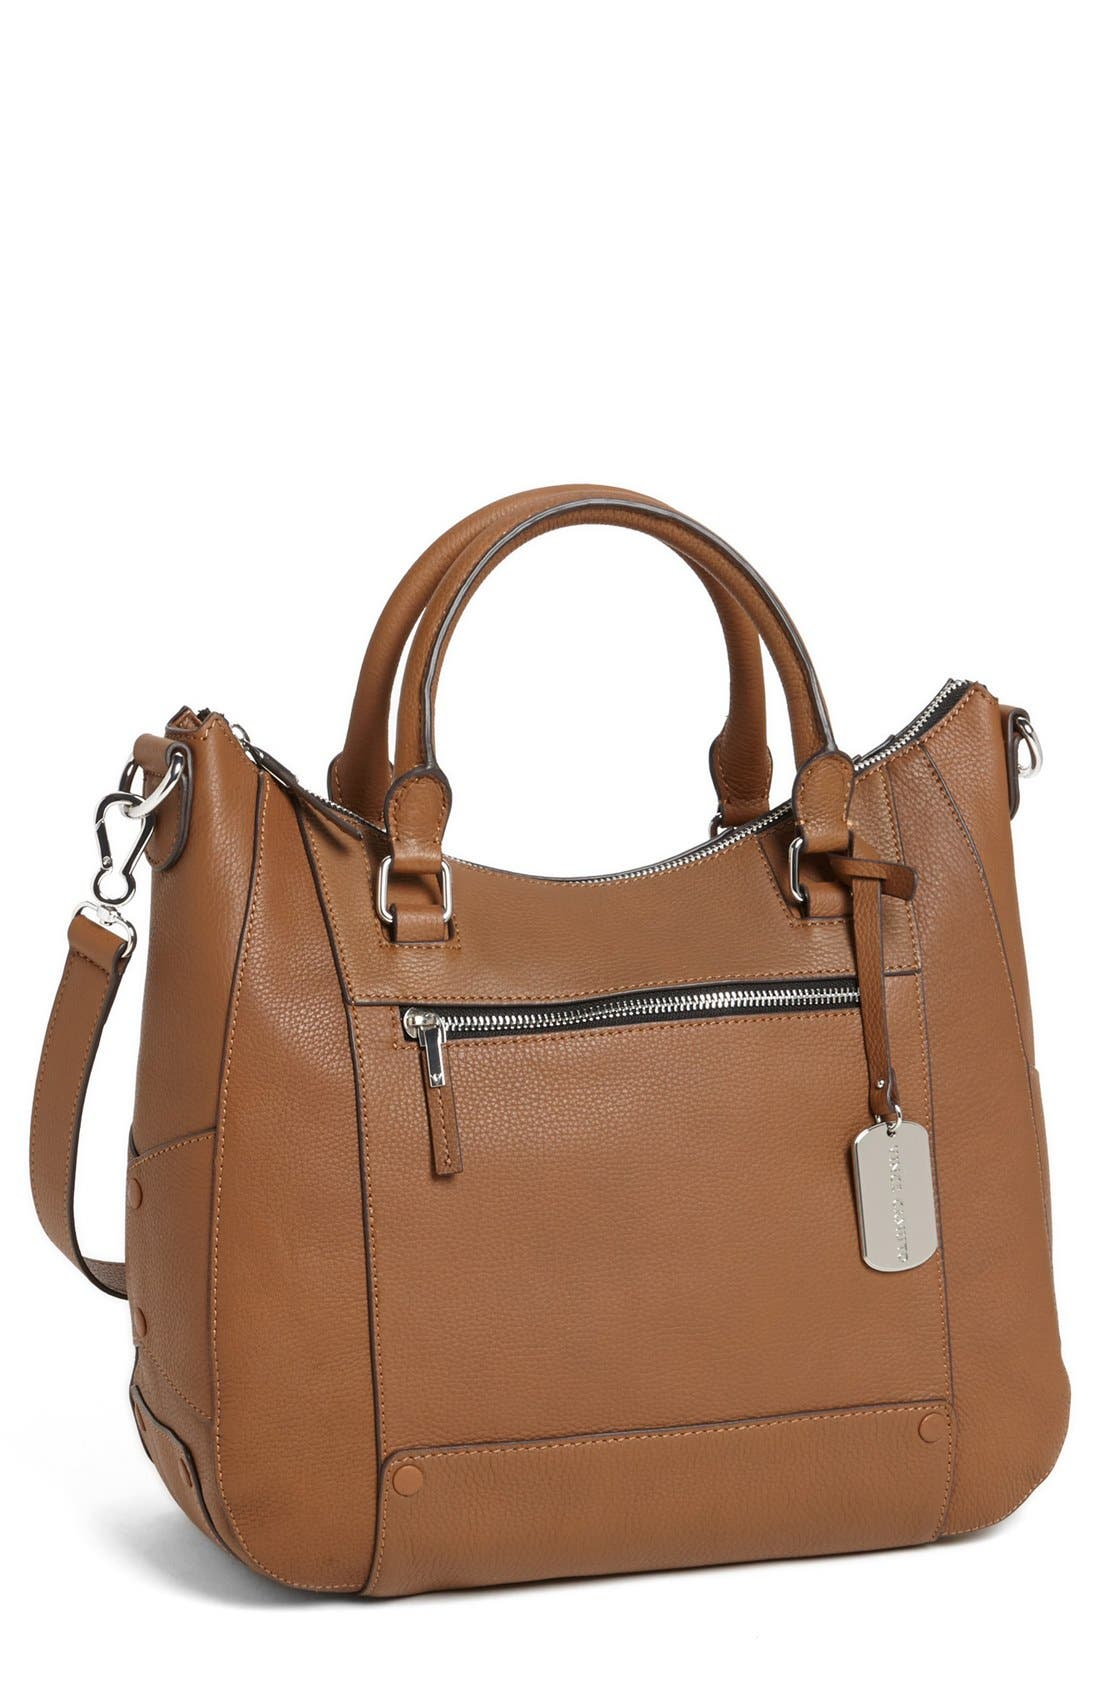 Alternate Image 1 Selected - Vince Camuto 'Mikey' Satchel